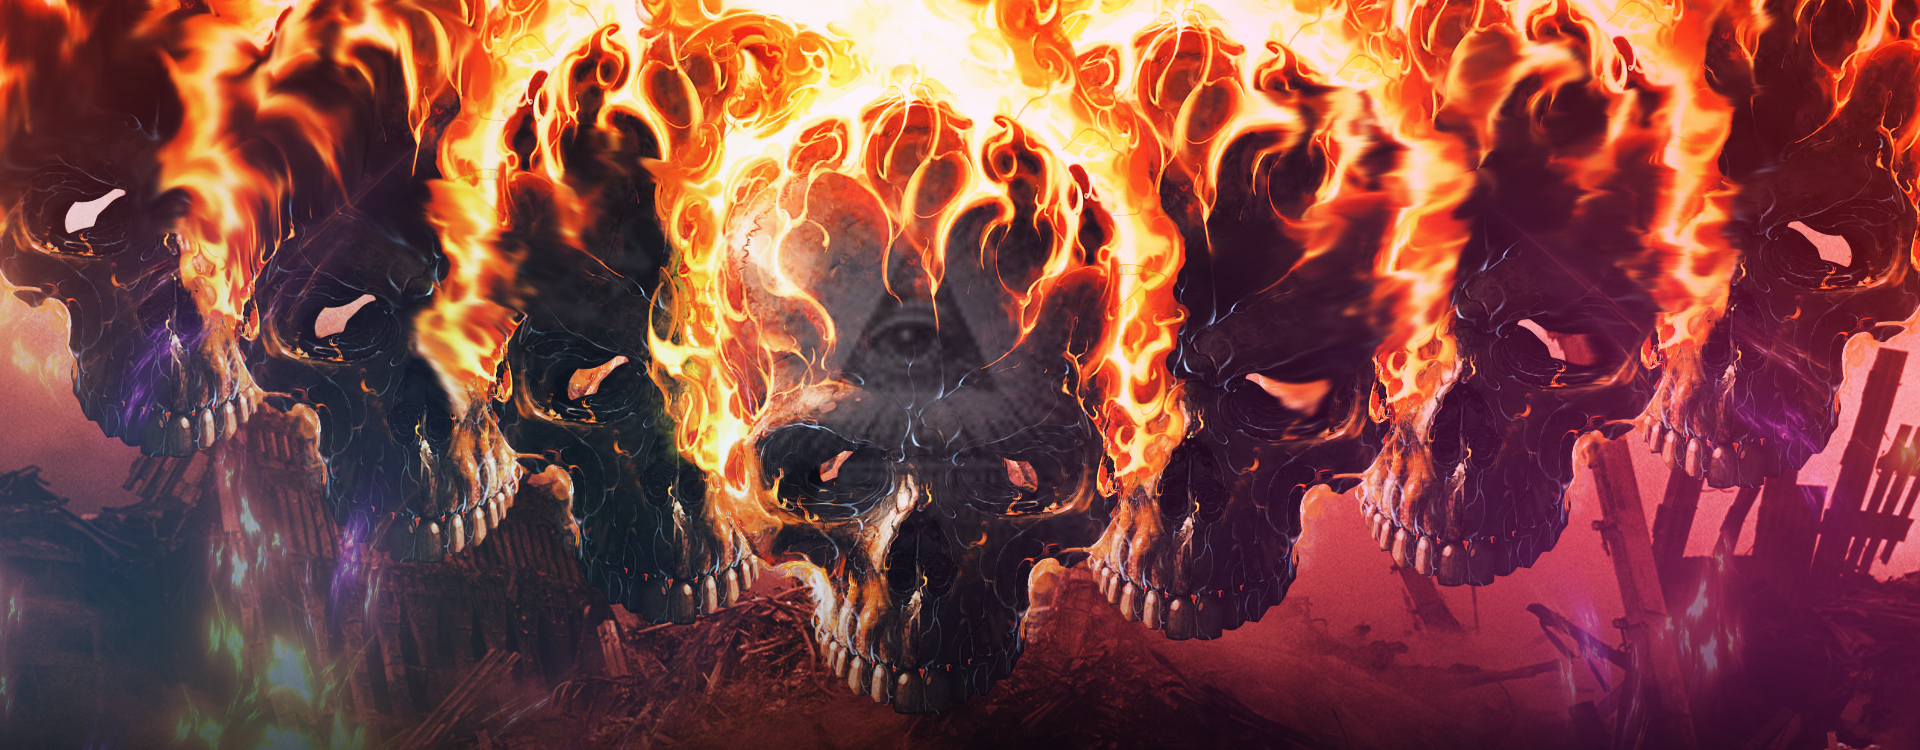 Illuminati Skull for fb timeline cover by freshofficial on ...